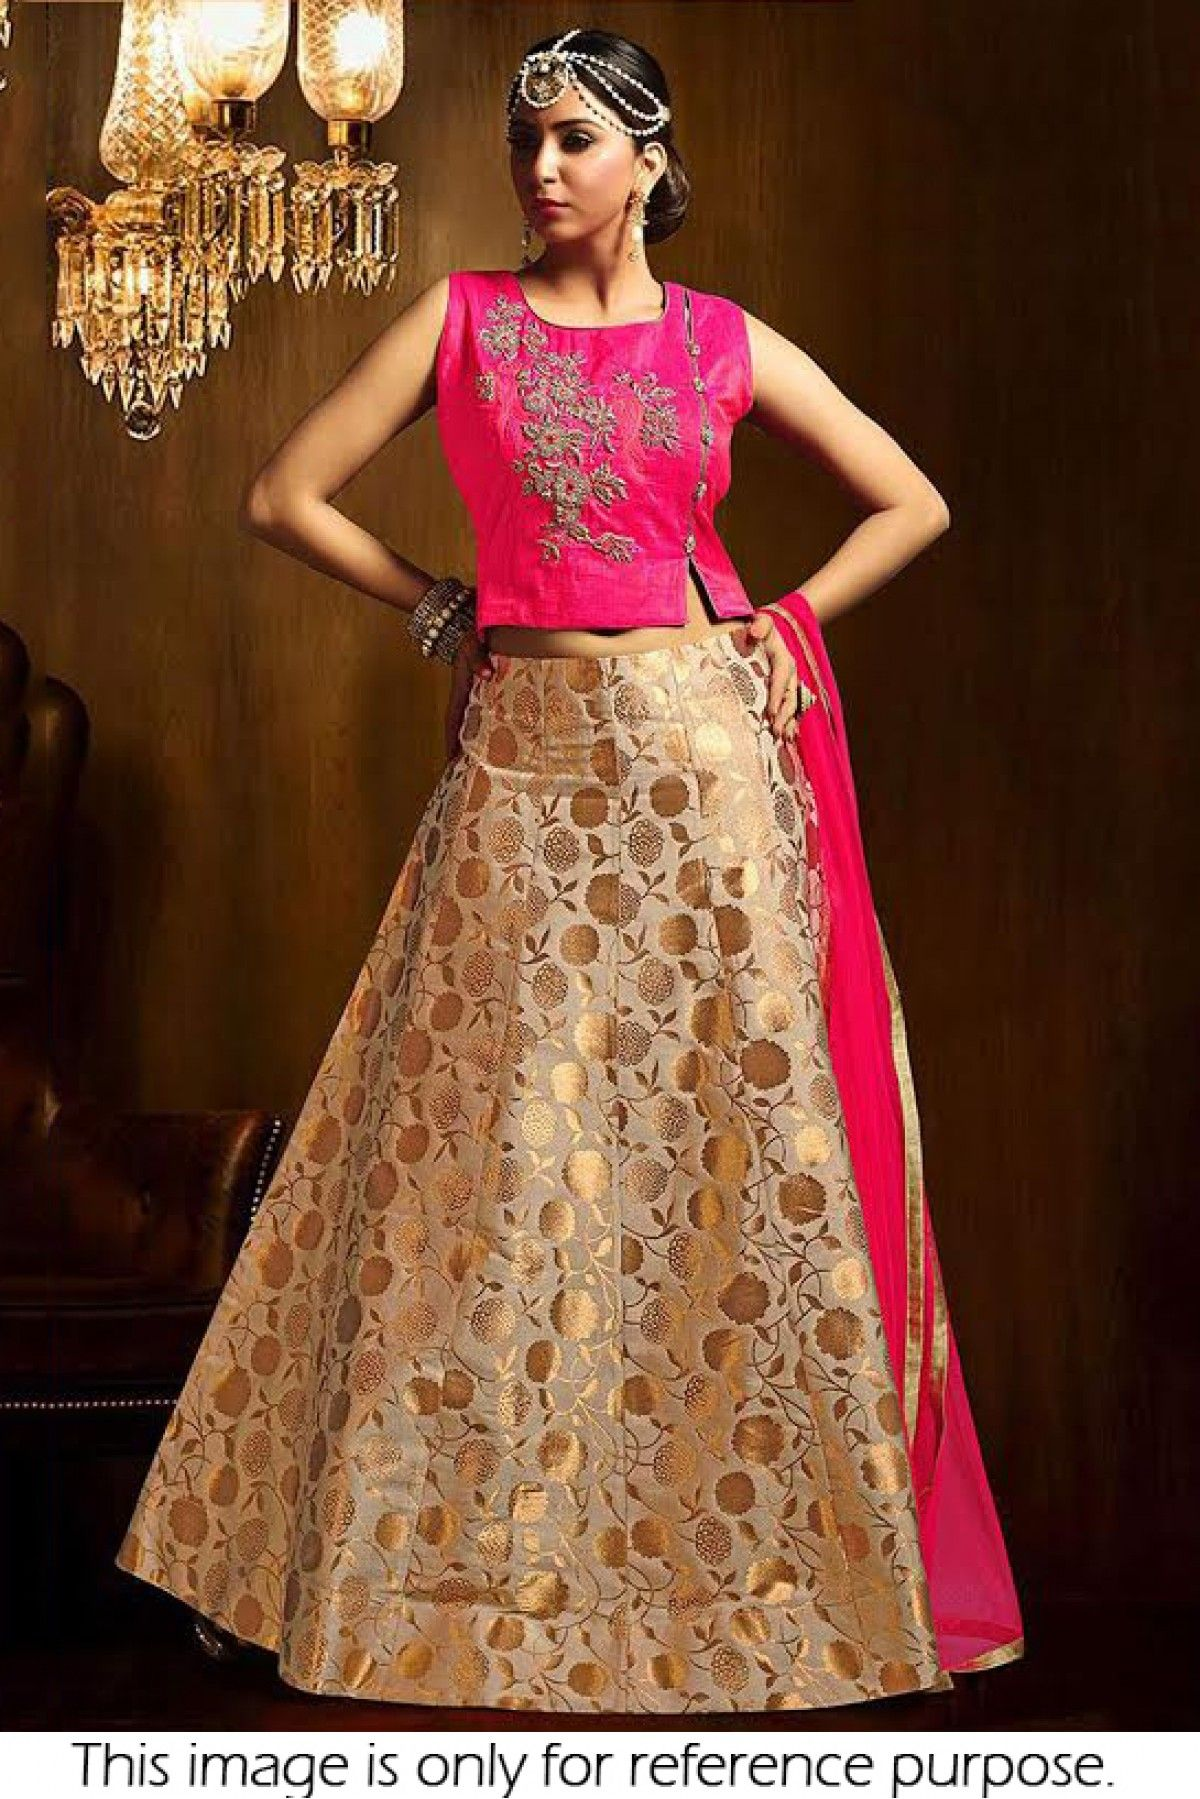 3230888bd Beige Colour Georgette Brocade Fabric Party Wear Lehenga Choli Comes with  matching blouse. This Lehenga Choli Is crafted with Embroidery This Lehenga  Choli ...